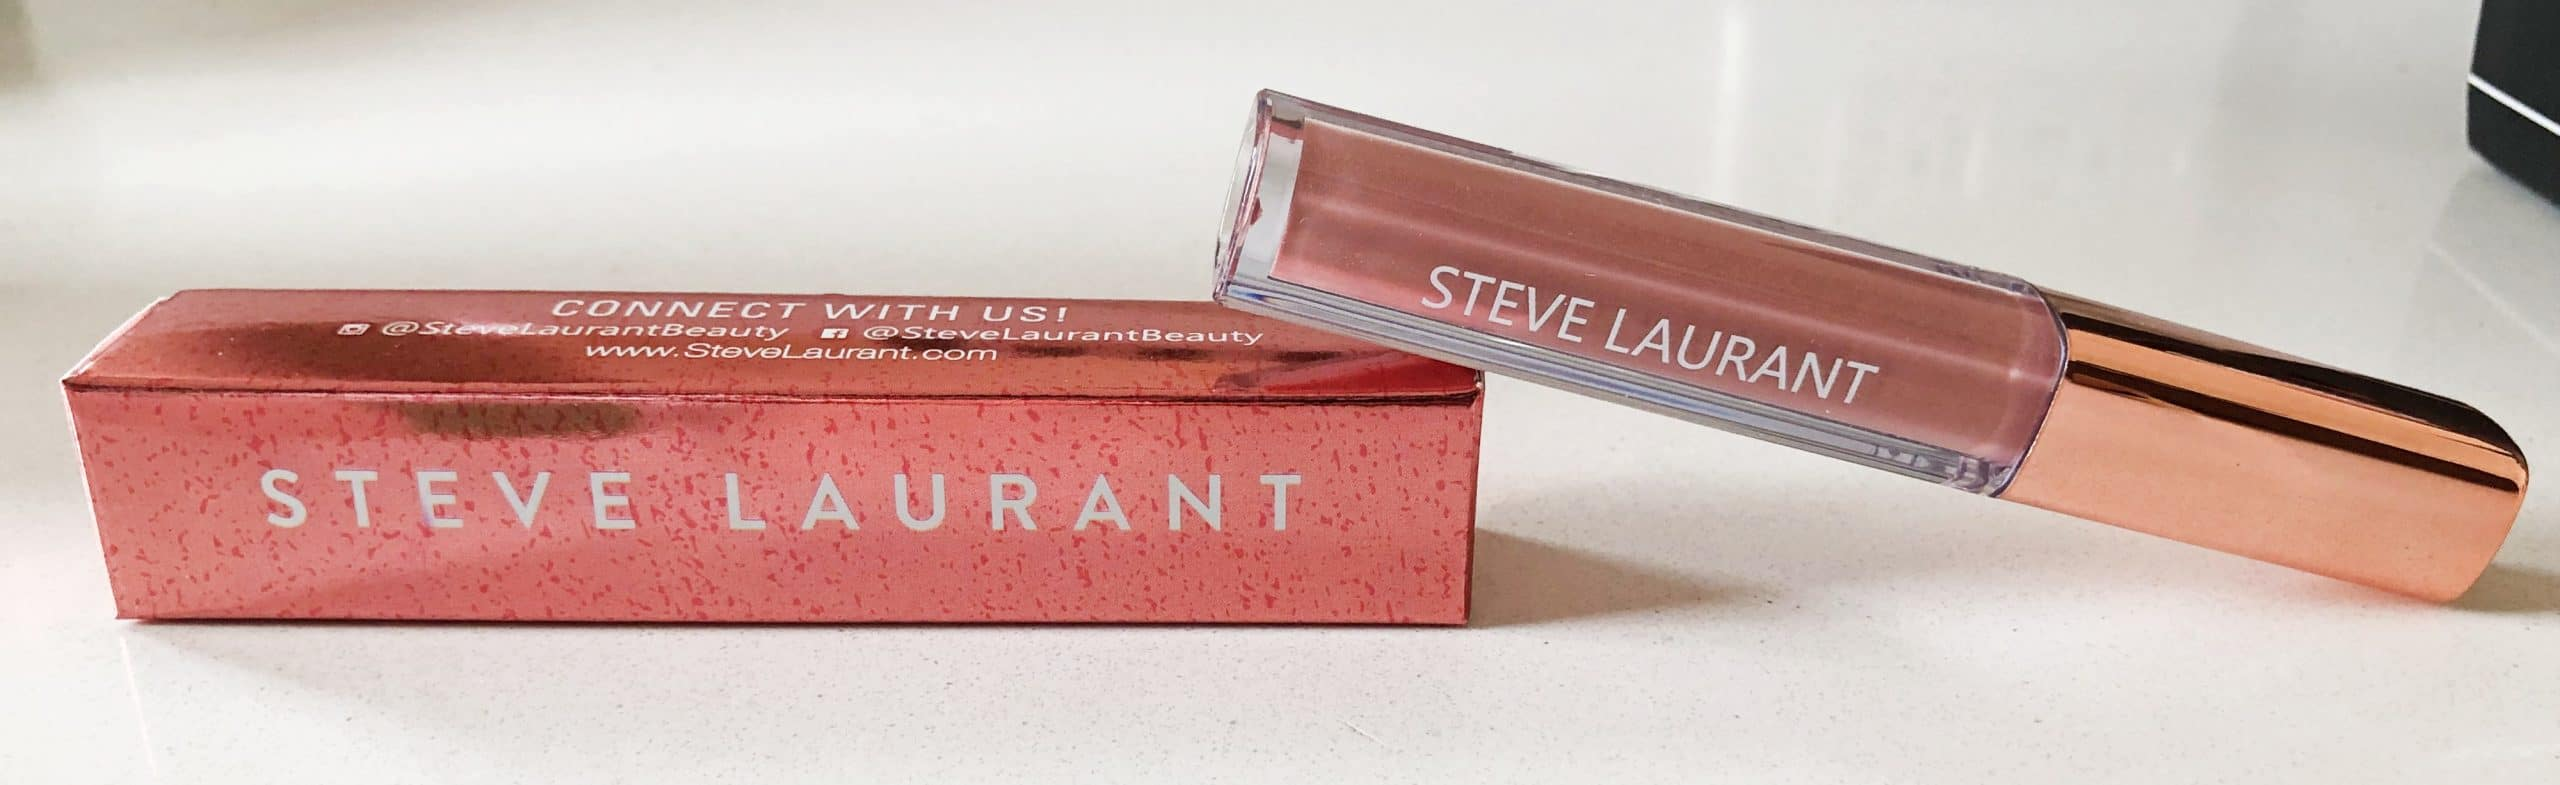 Boxycharm Steve Laurant